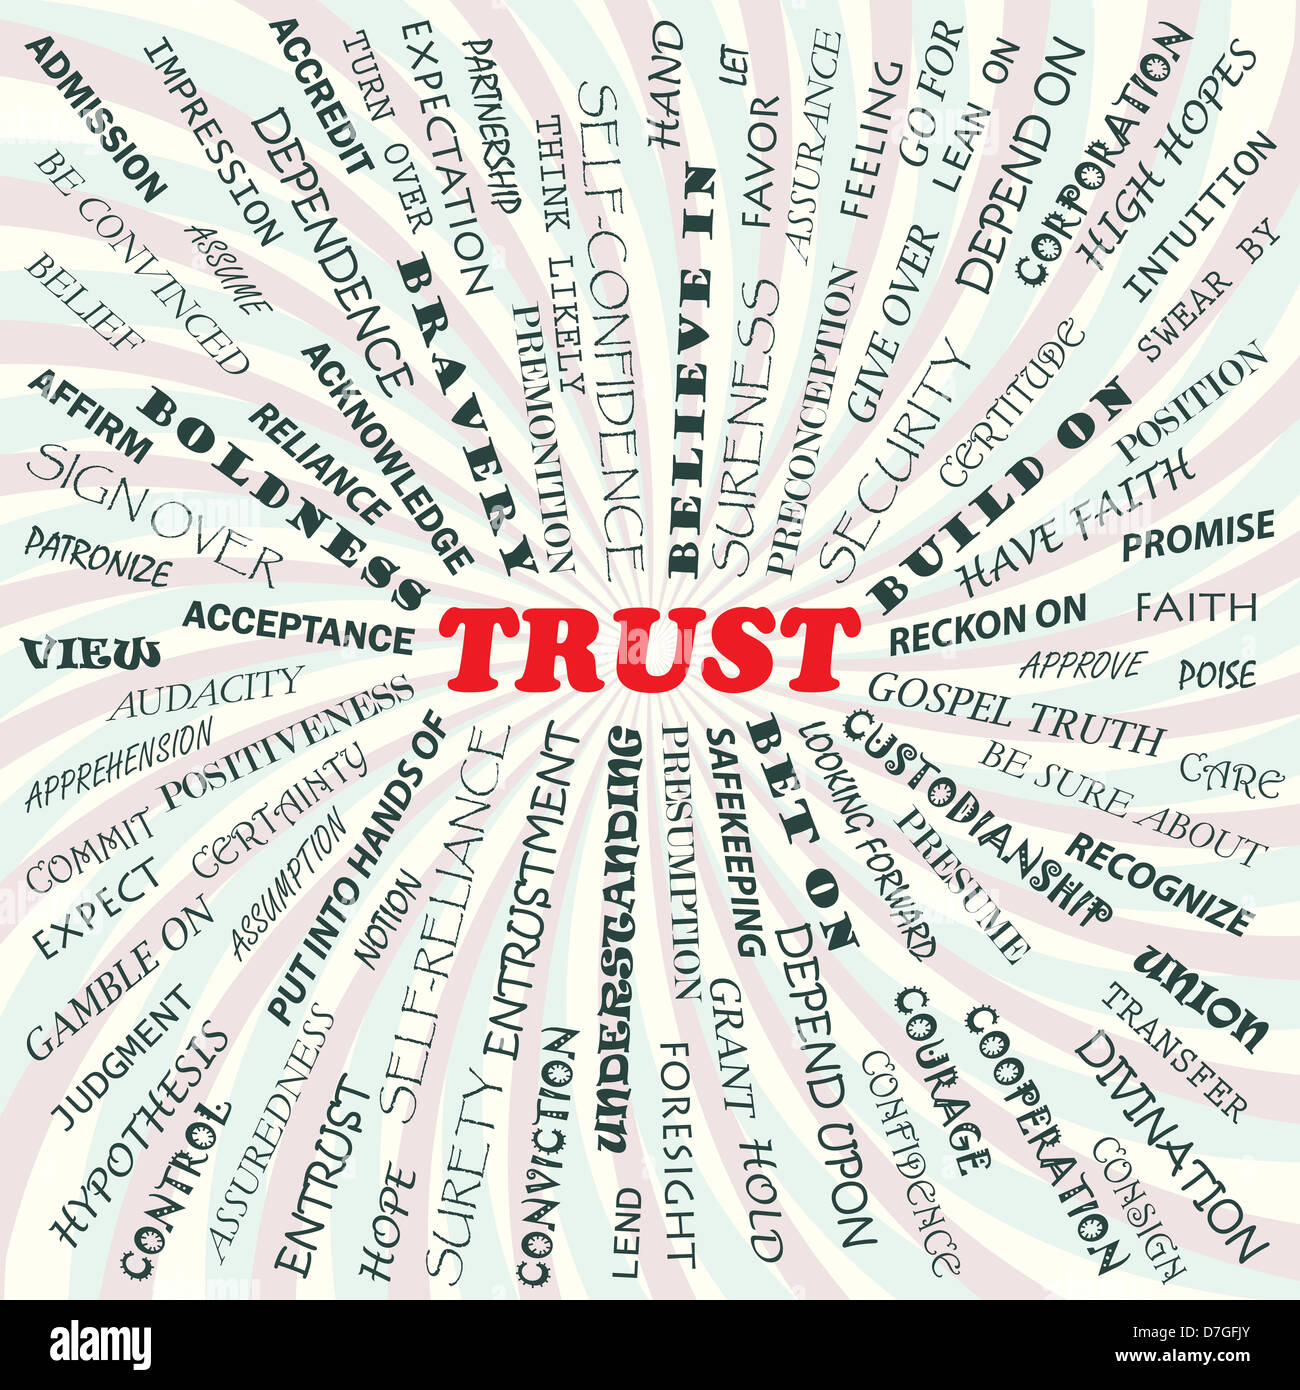 illustration of trust concept. - Stock Image